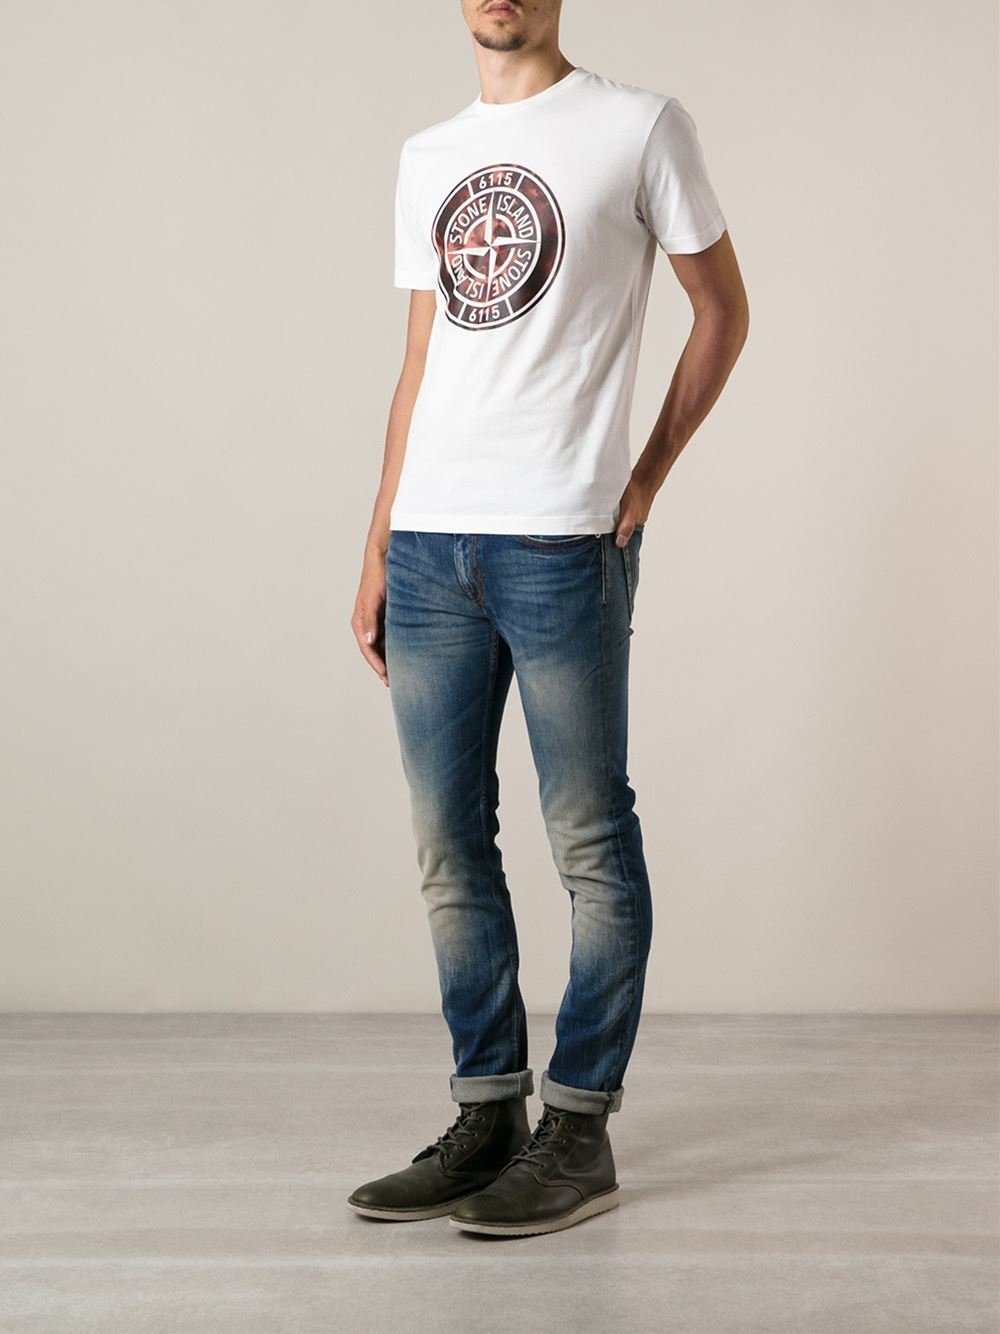 Shop for stone wash blue jean online at Target. Free shipping on purchases over $35 and save 5% every day with your Target REDcard.